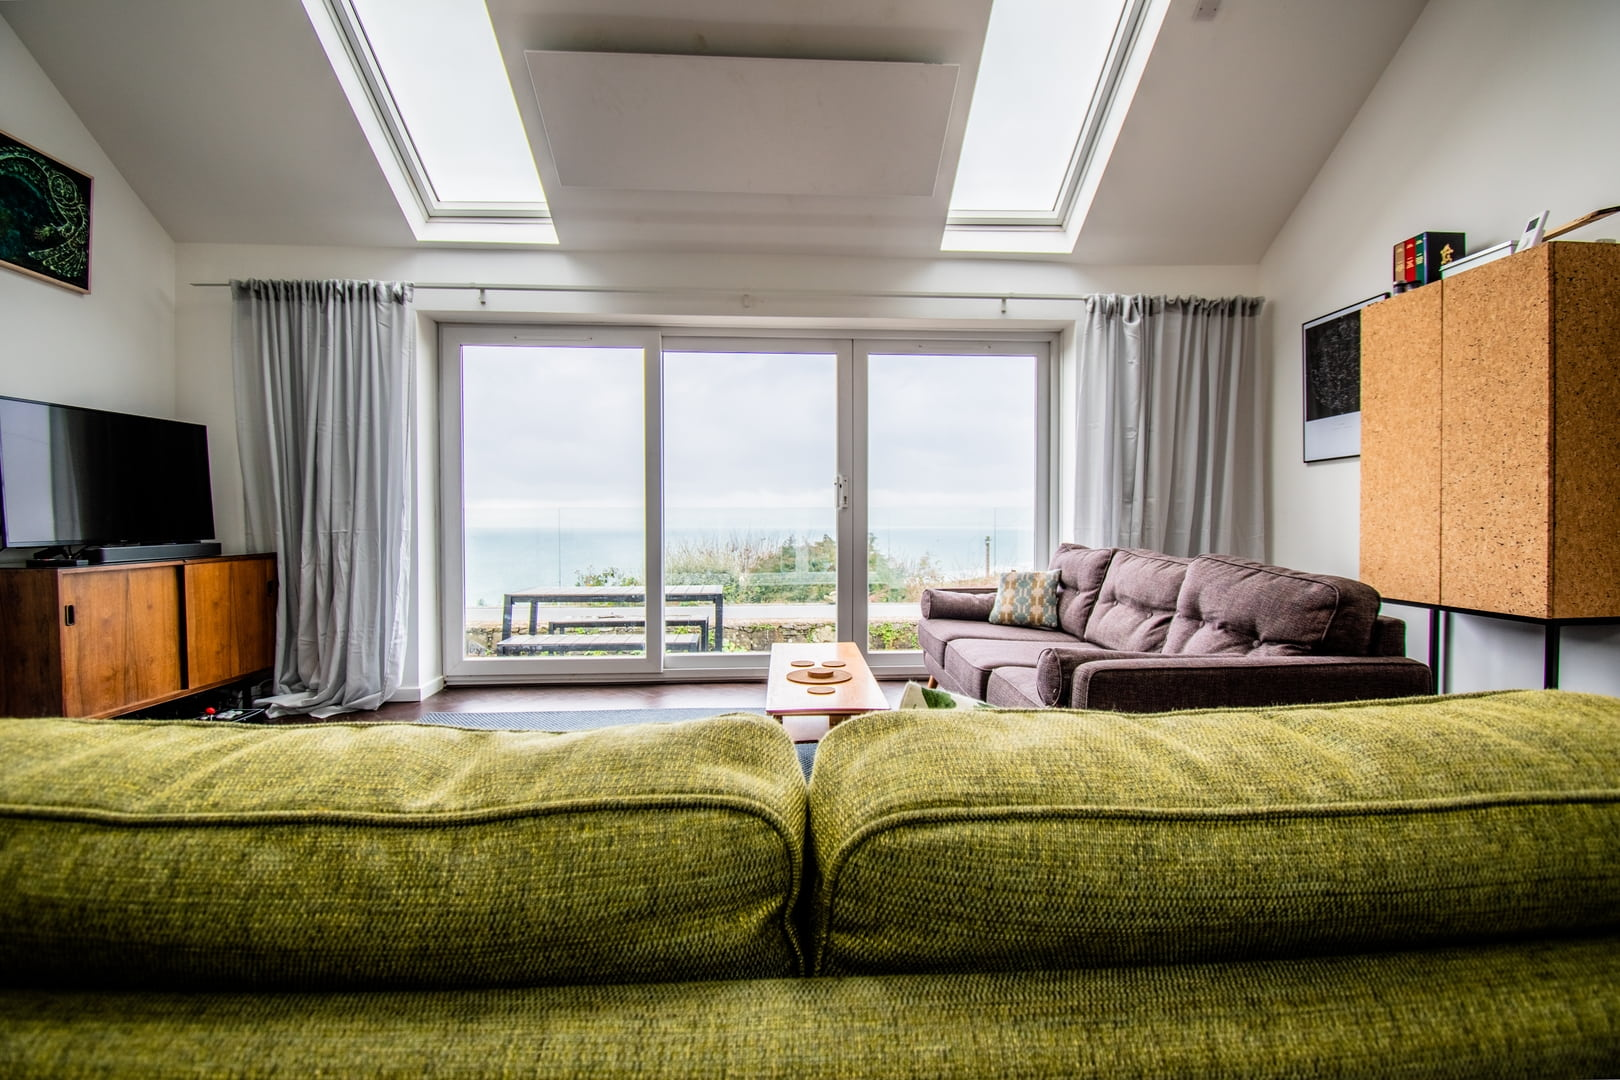 Sea views from the living area